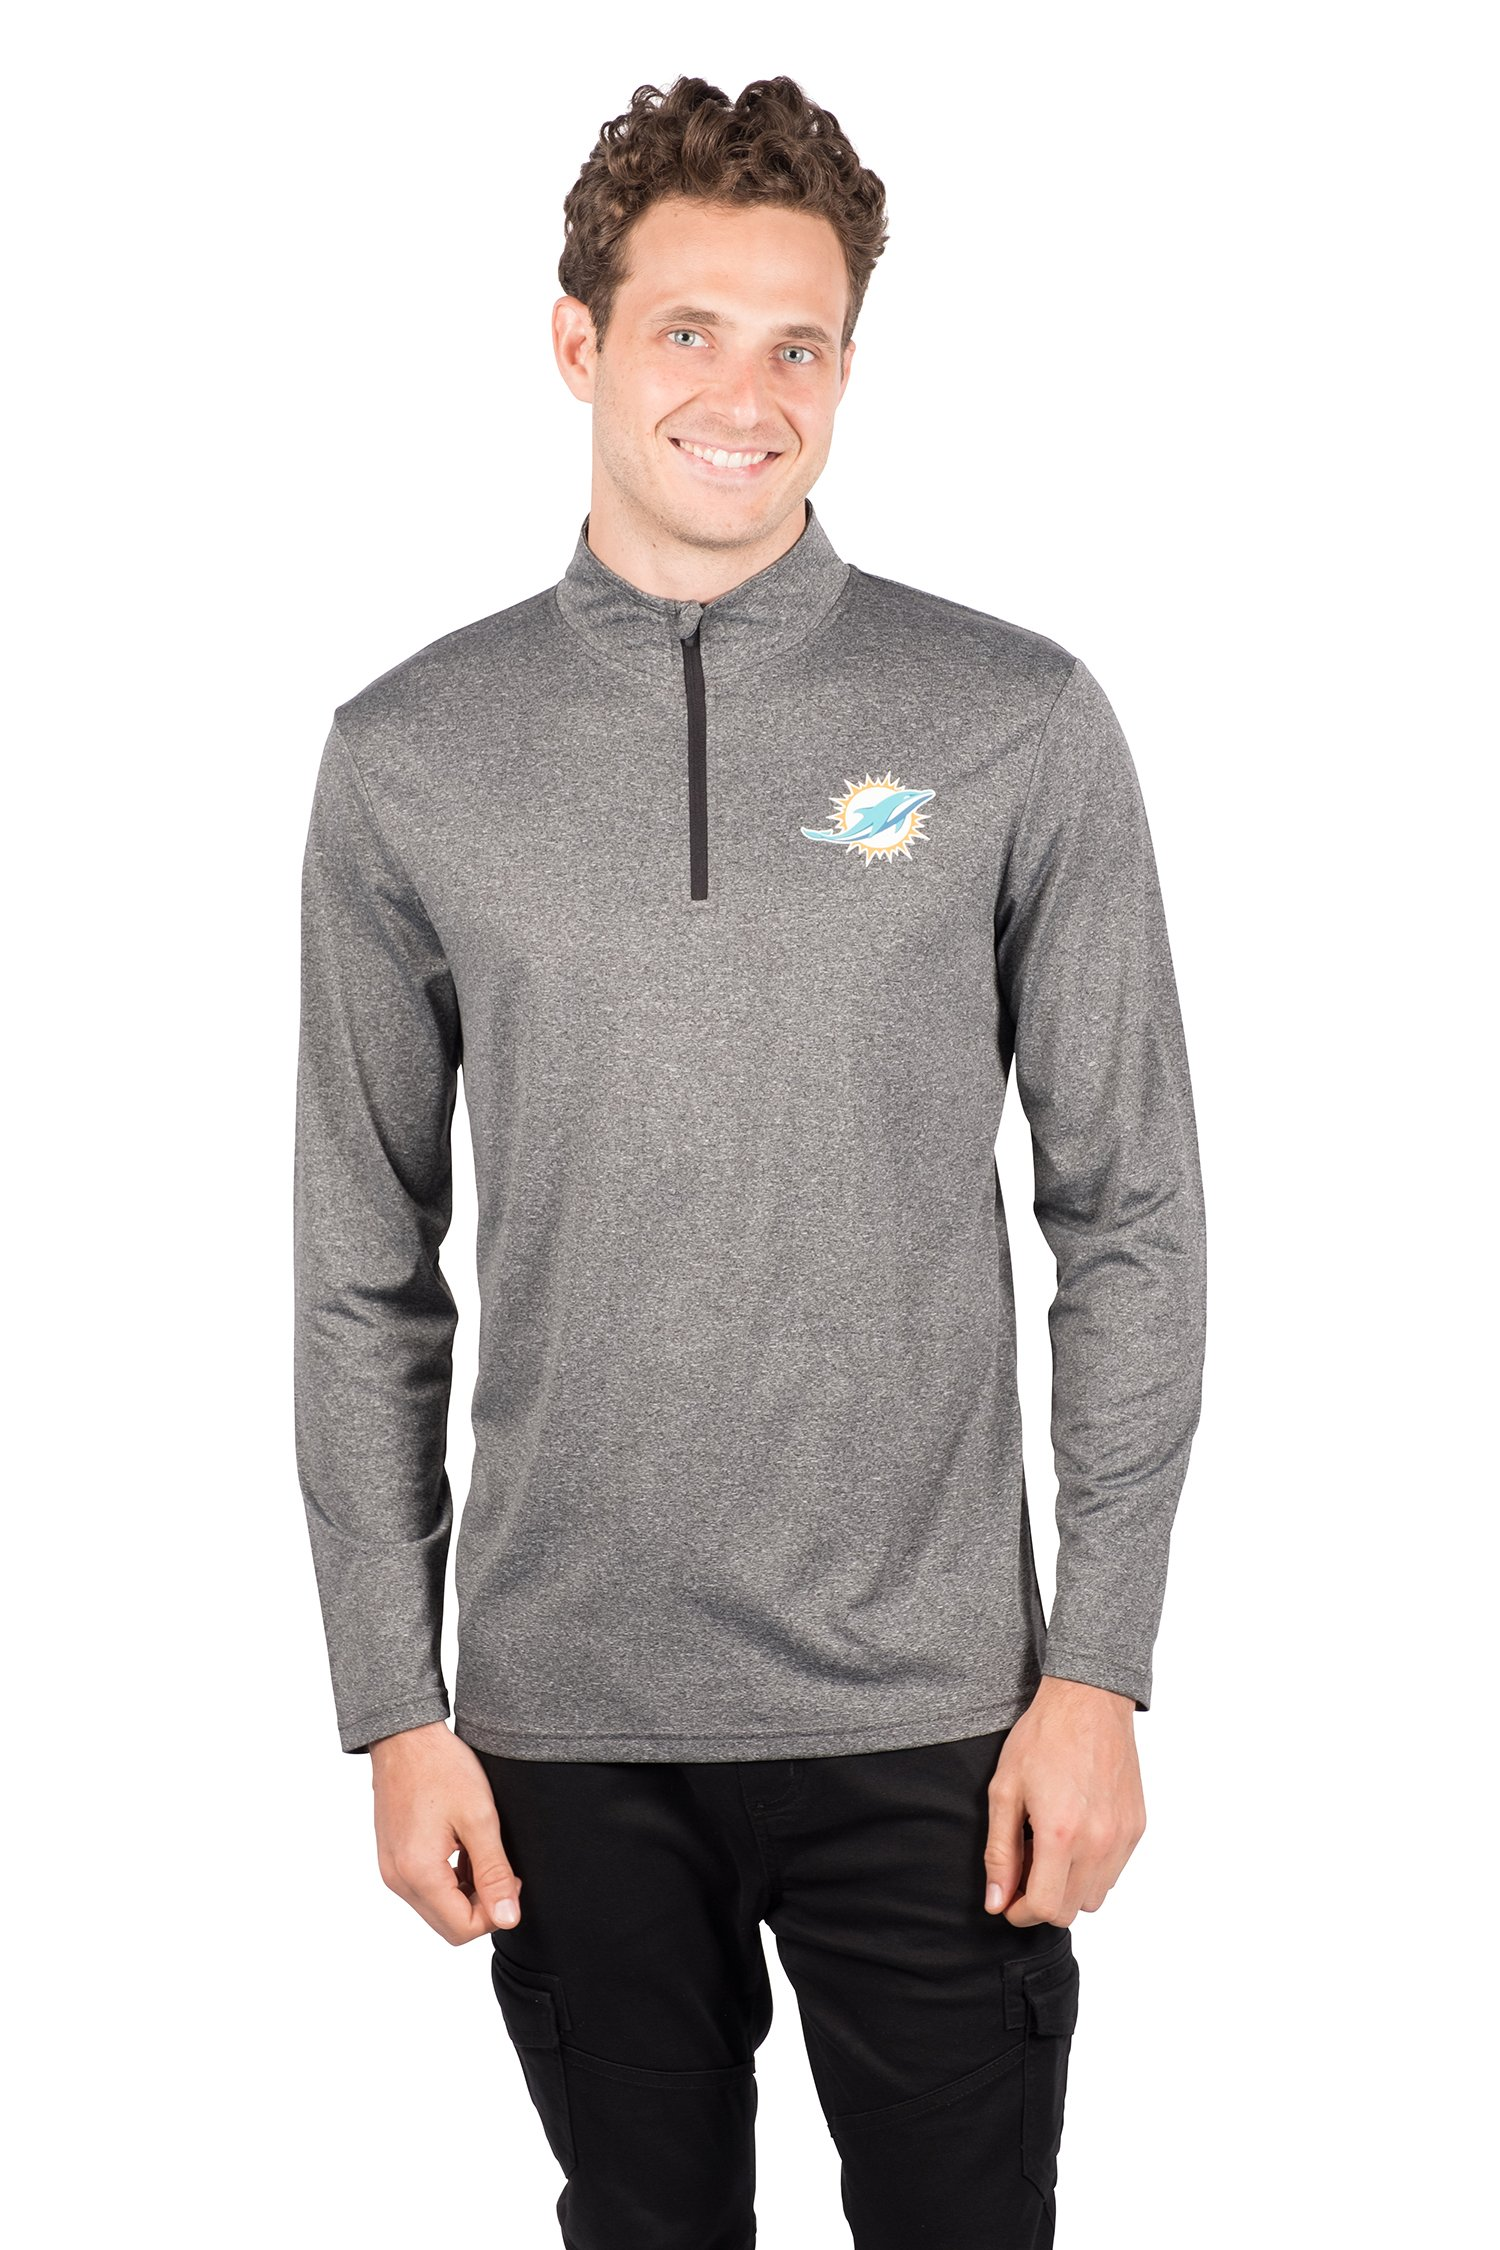 Ultra Game Men's NFL Quarter Zip Athletic Quick Dry Pullover Tee Shirt, Miami Dolphins, Charcoal Heather, Small